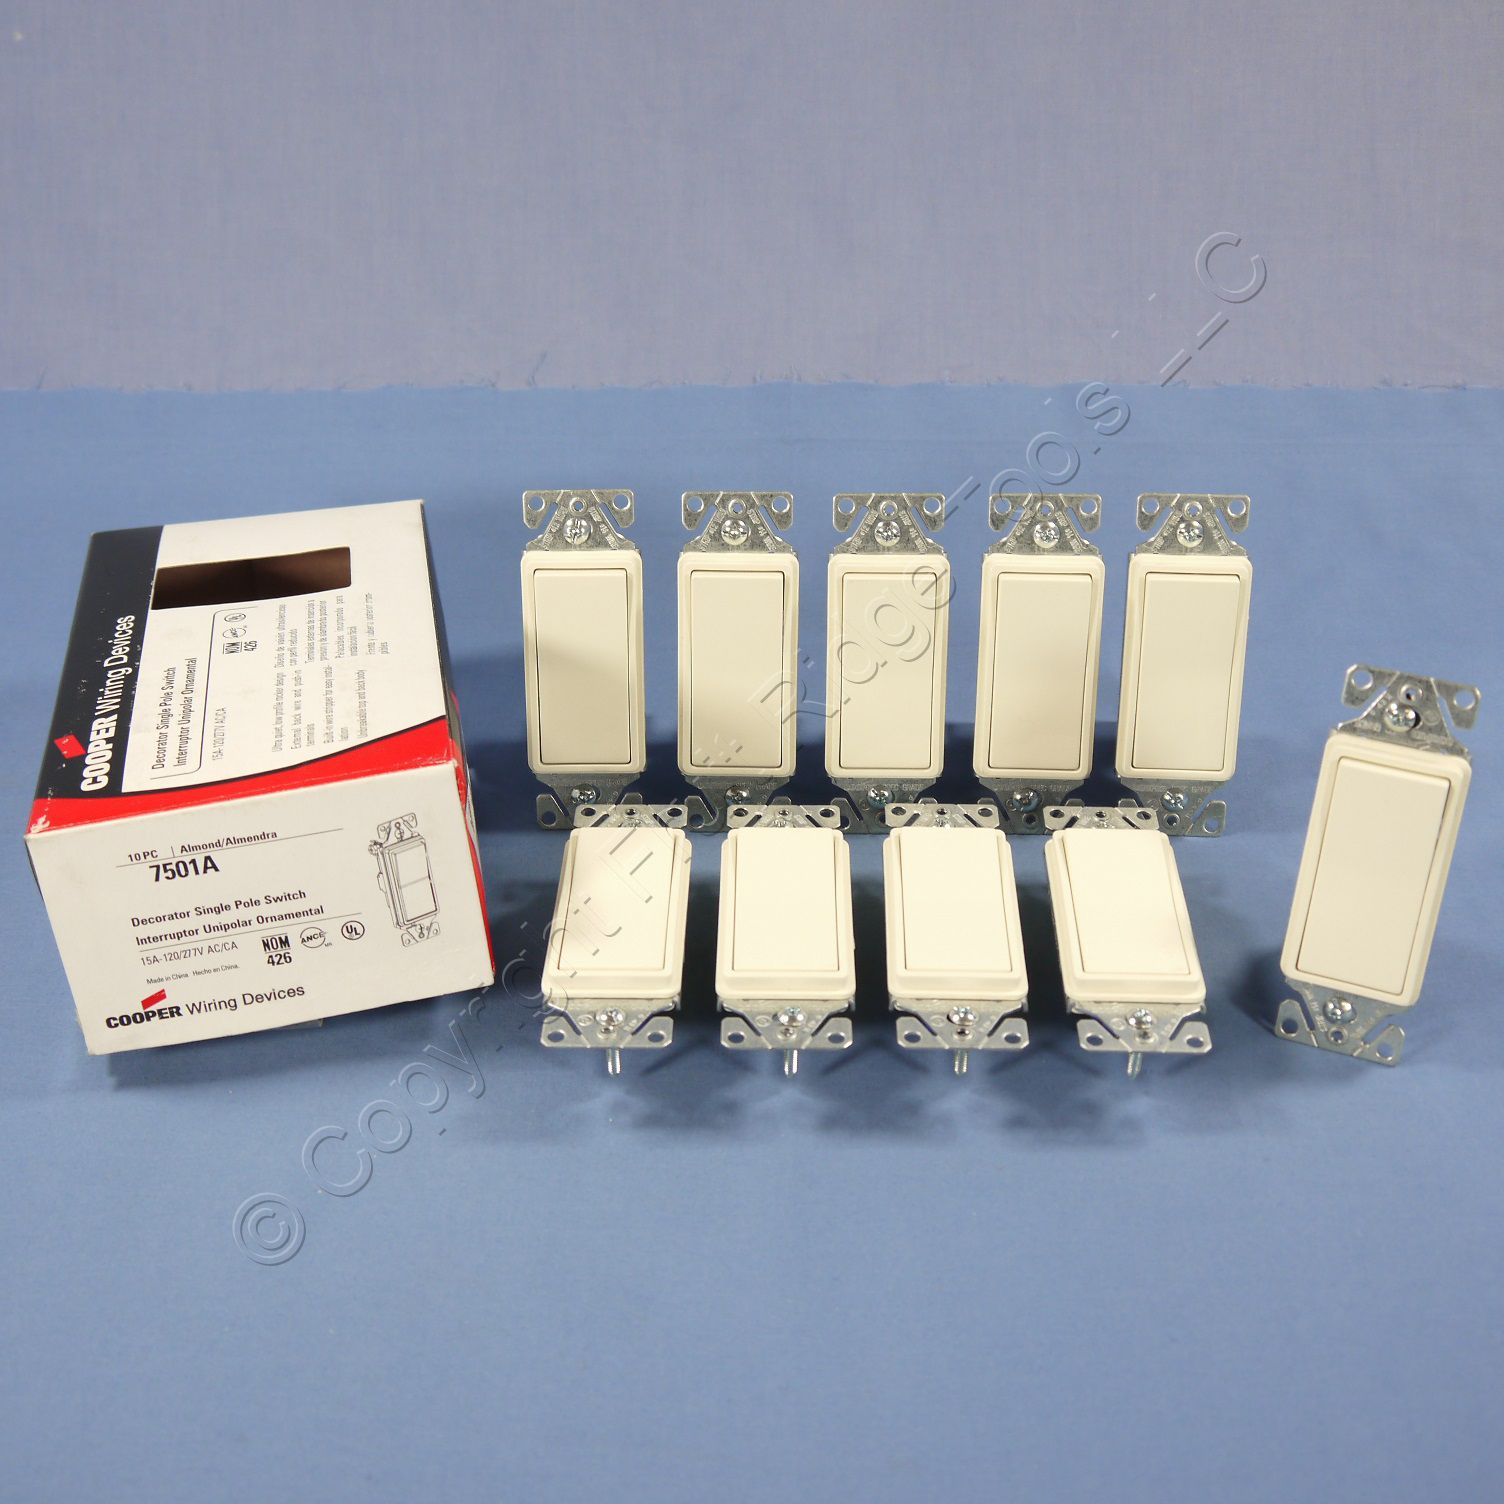 10 Cooper Almond Decorator Rocker Wall Light Switches 15A Single Pole 7501A